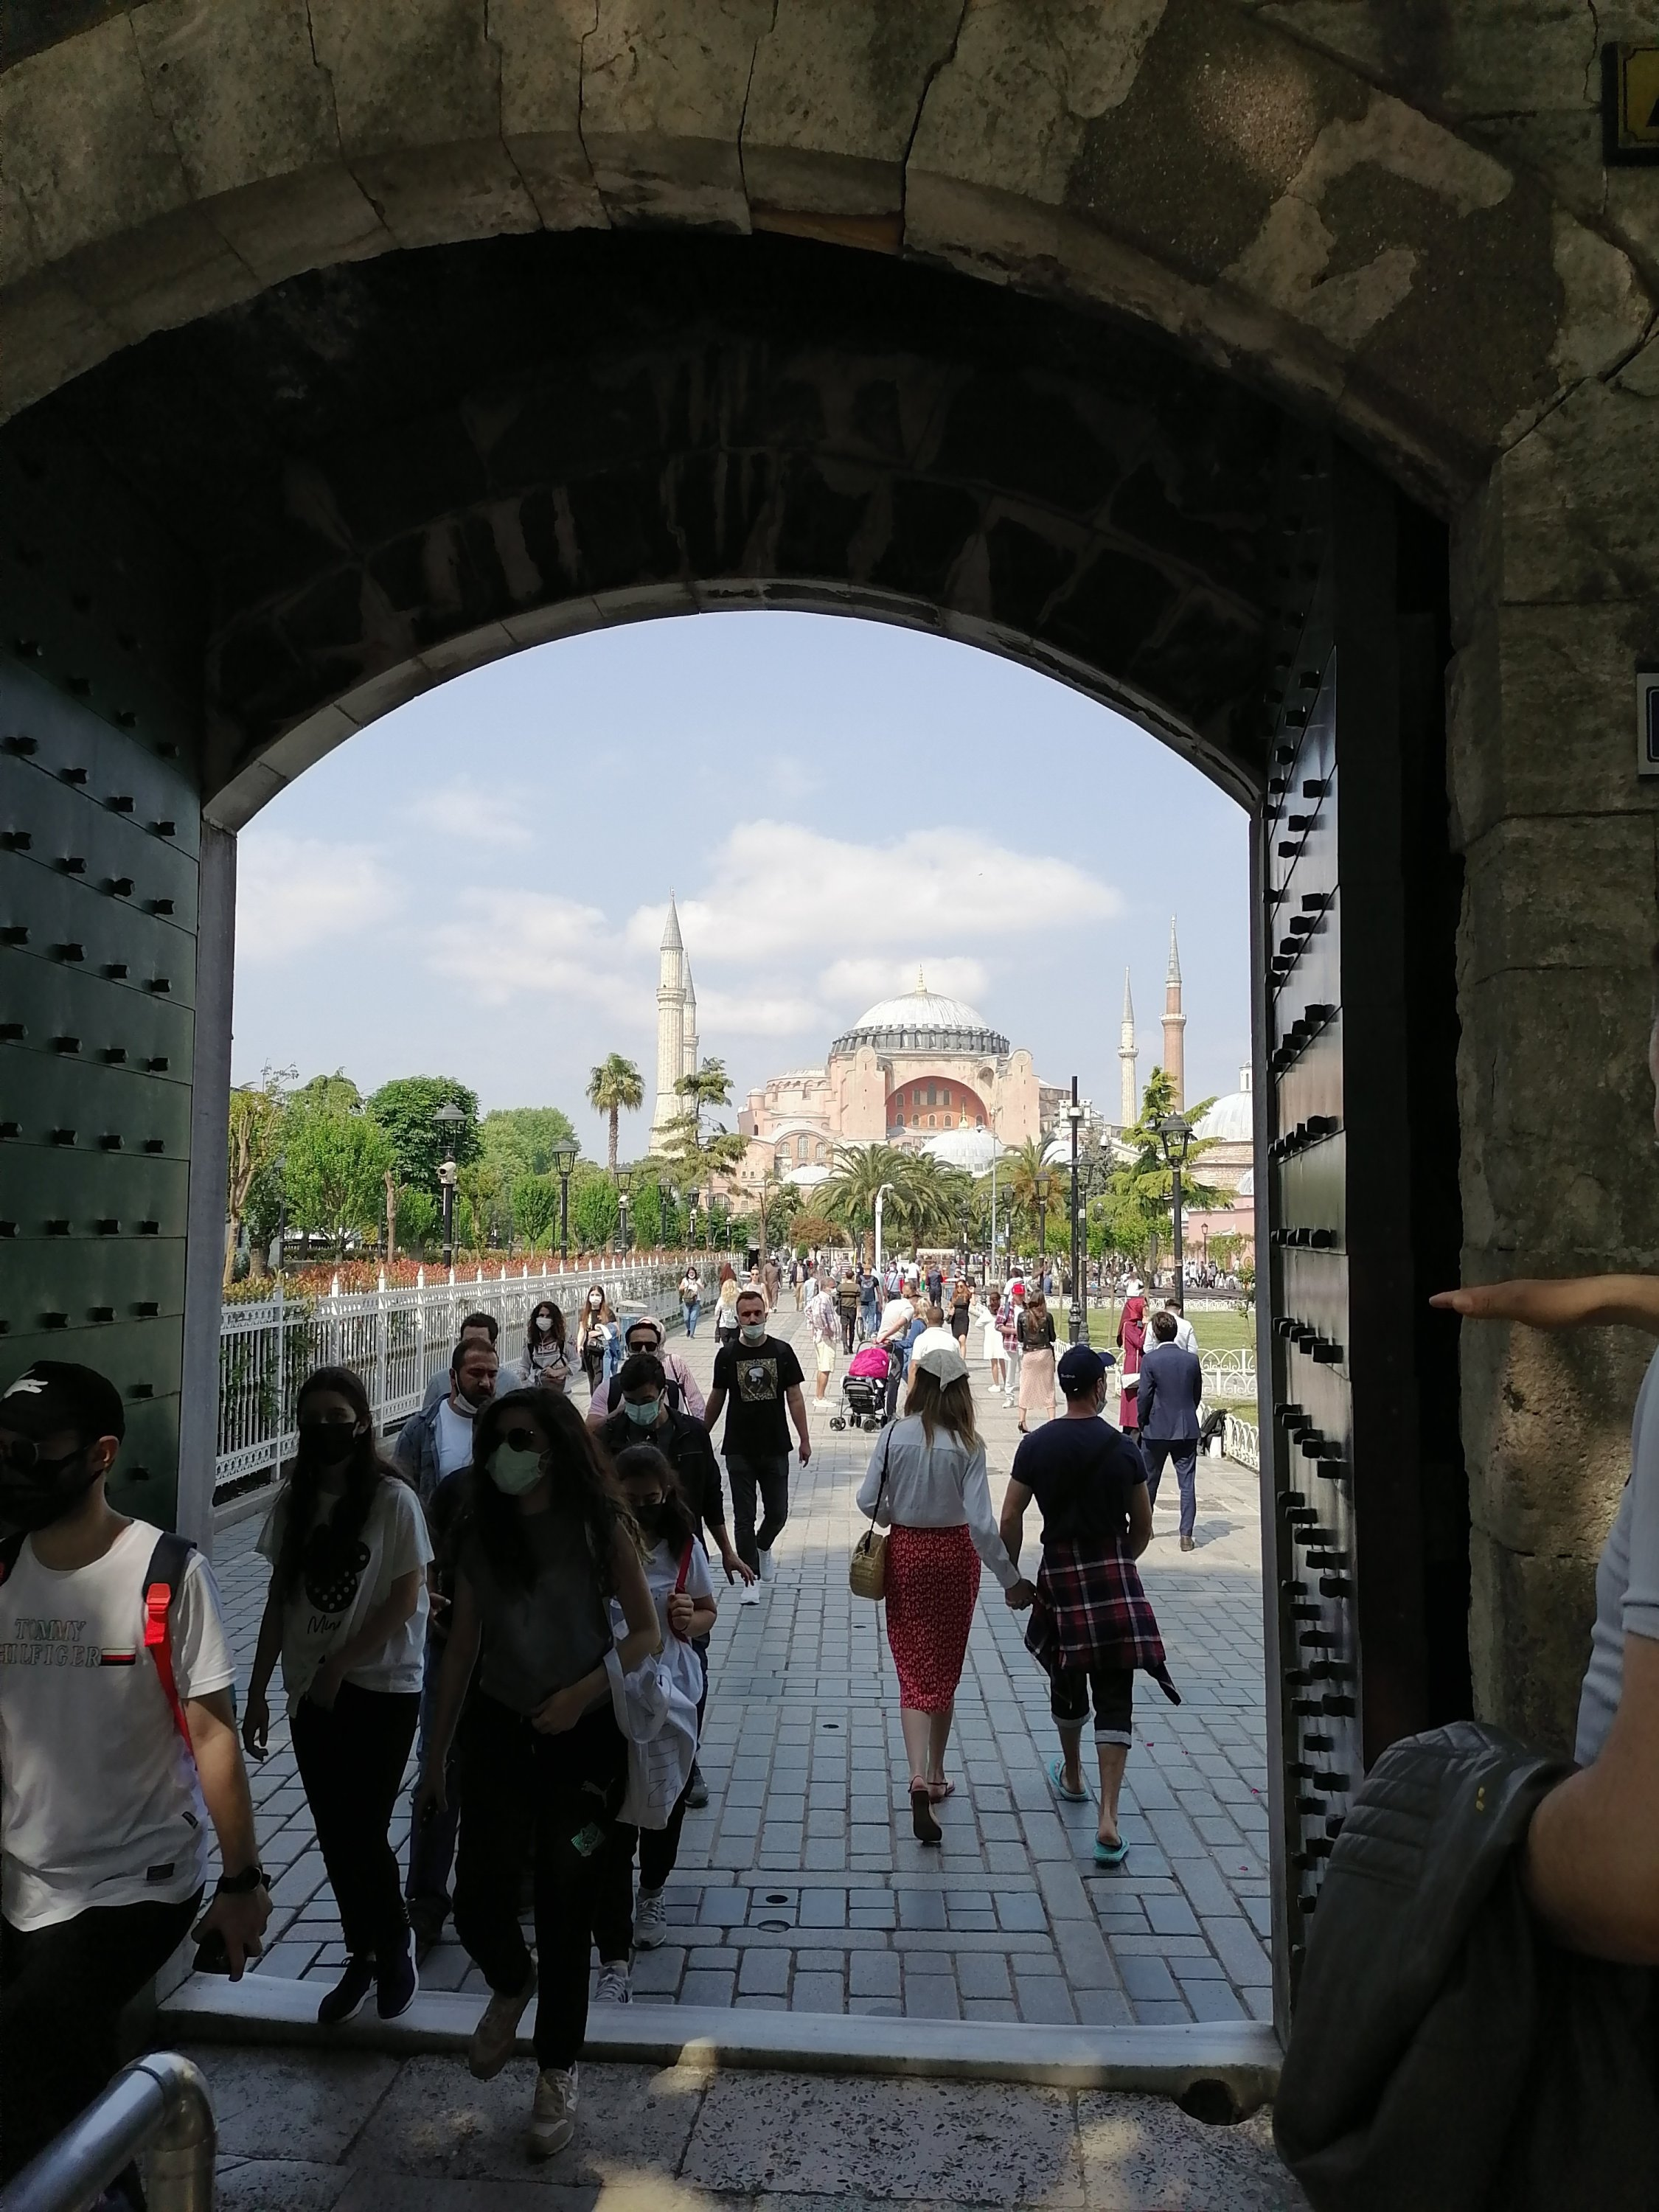 The first glimpse of Hagia Sophia Grand Mosque. (Aiza Azam for Daily Sabah)